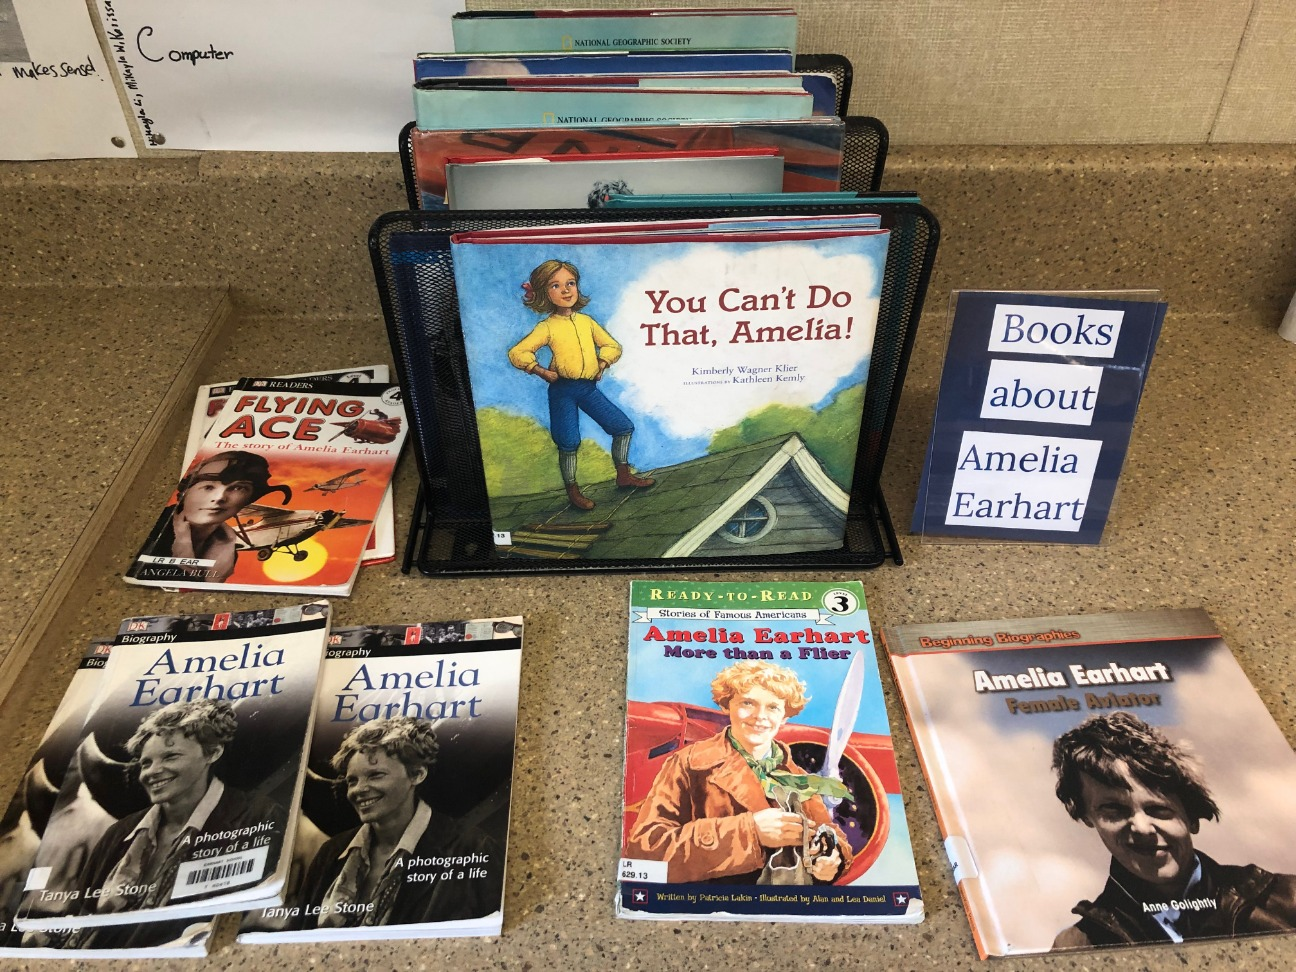 Books about Amelia Earhart